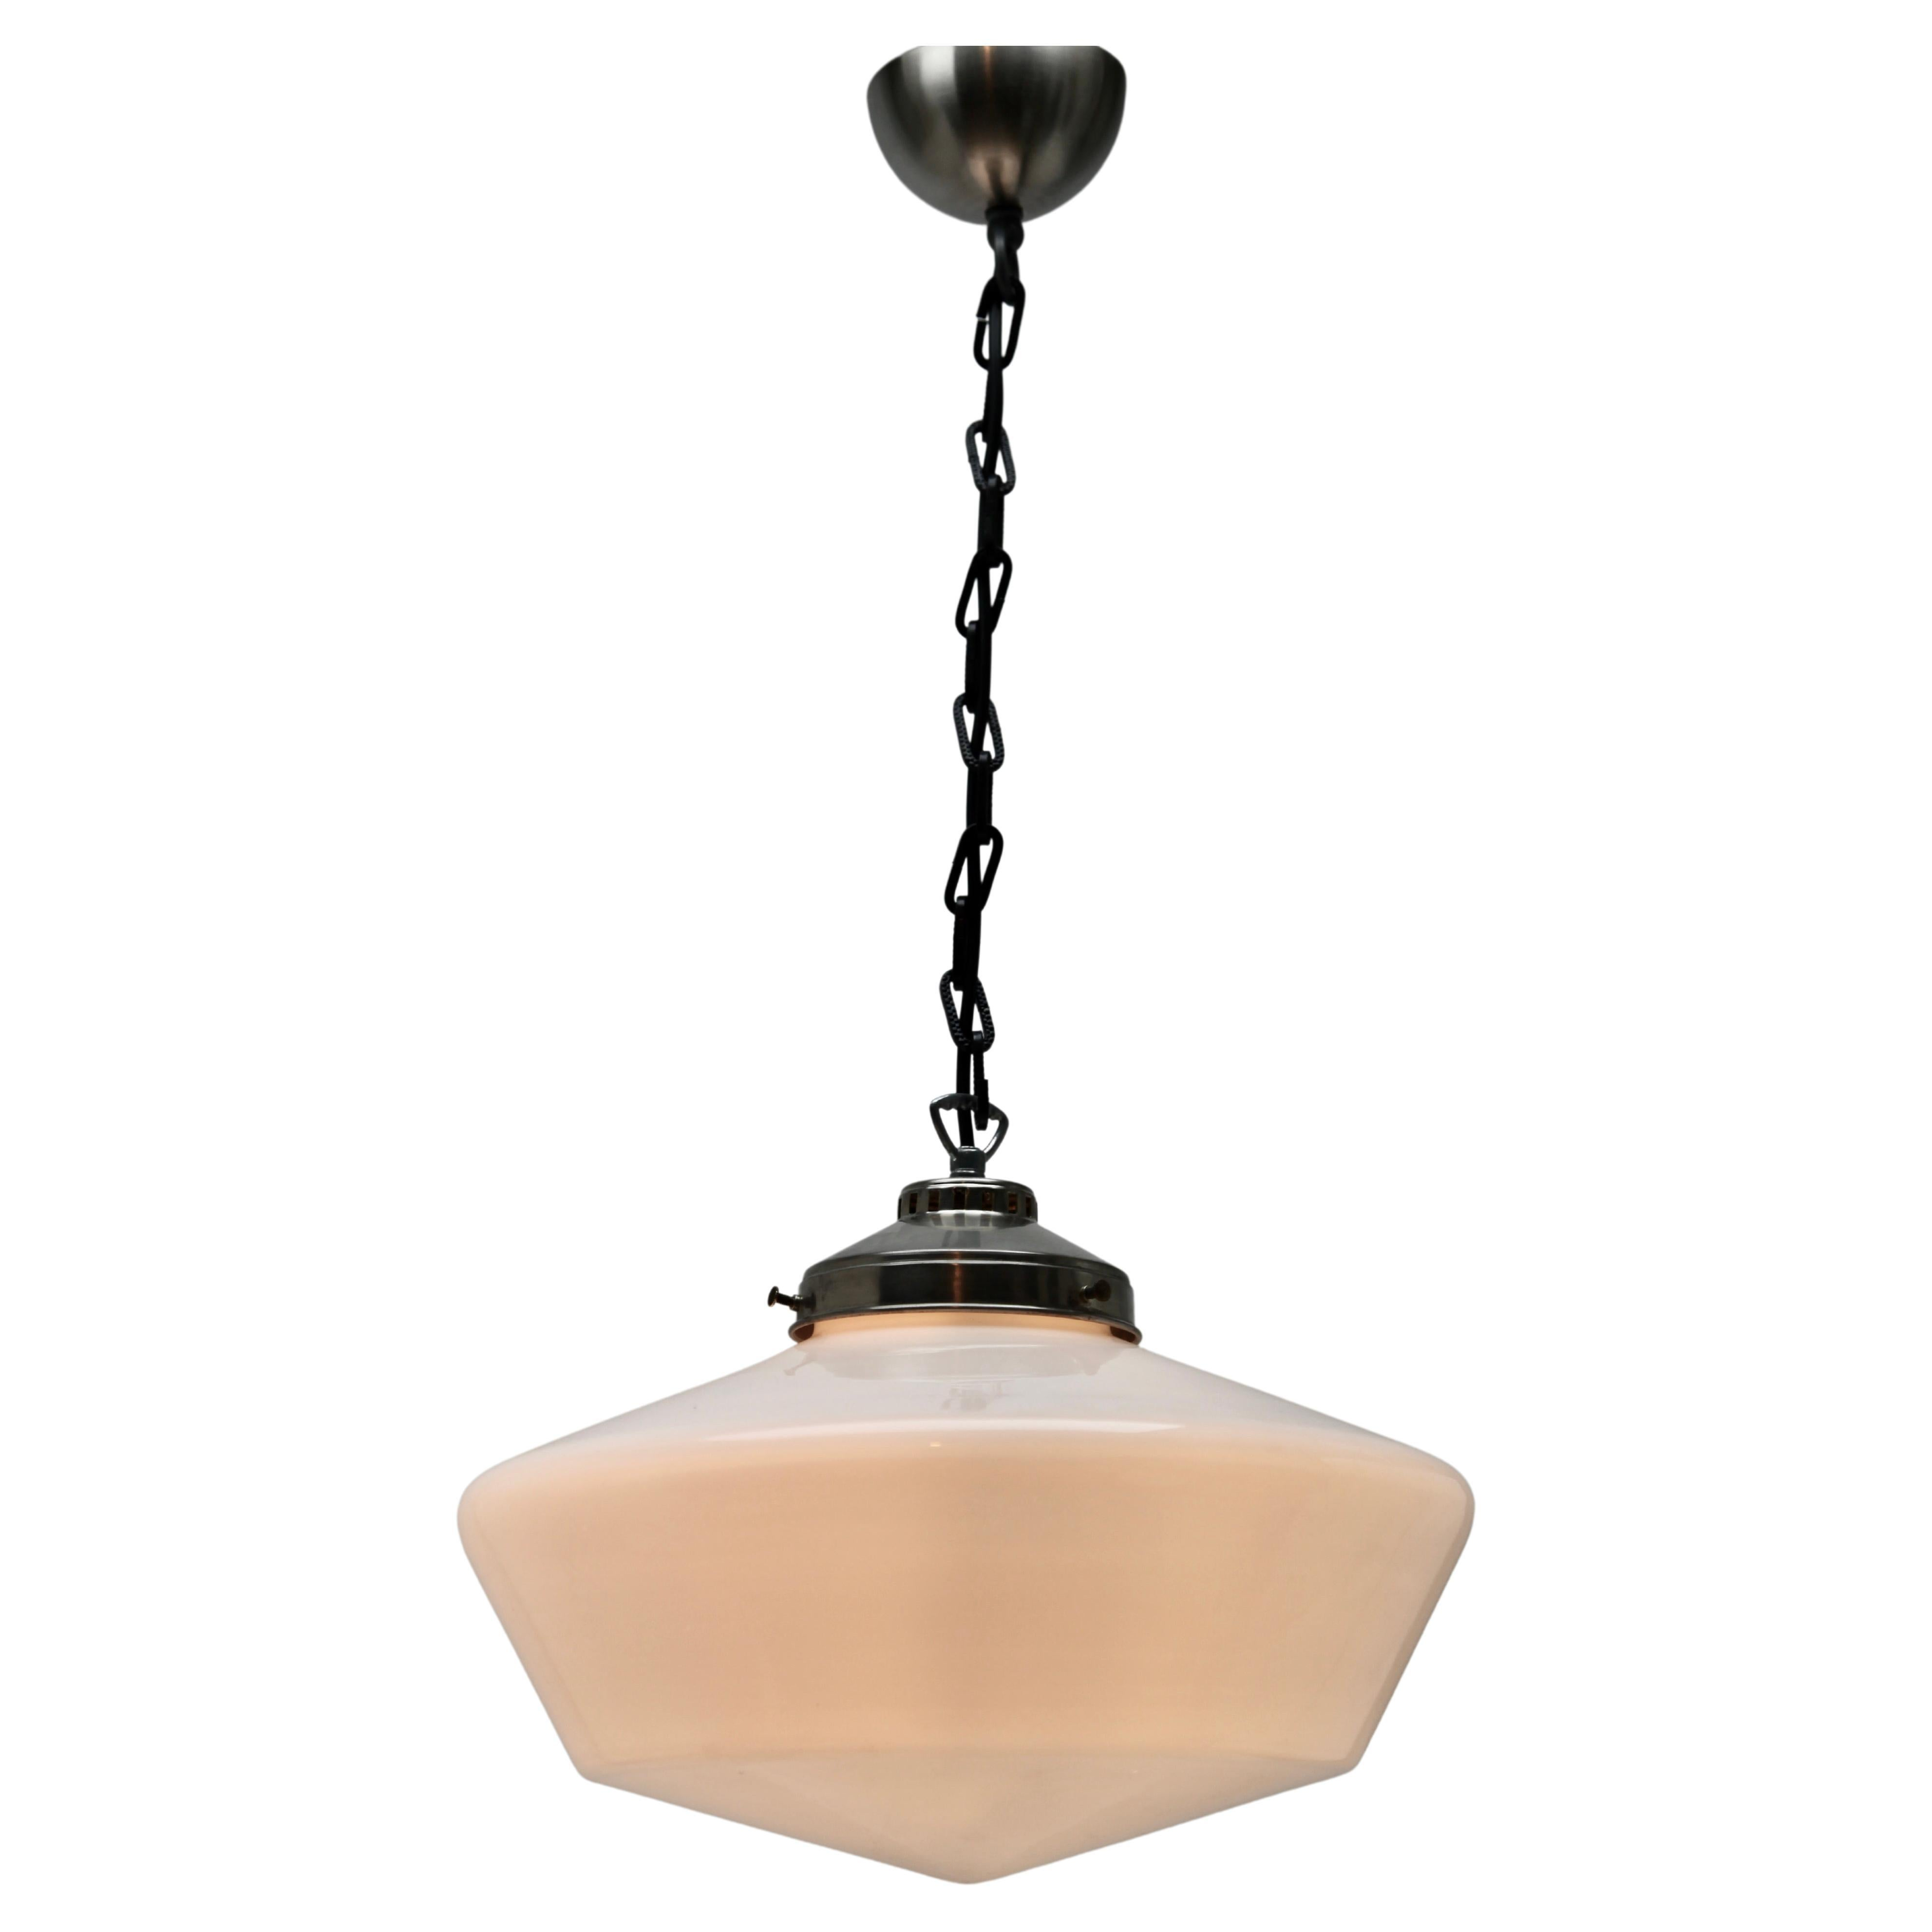 Pendant Lamp with a Opaline Shade, 1930s, Netherlands